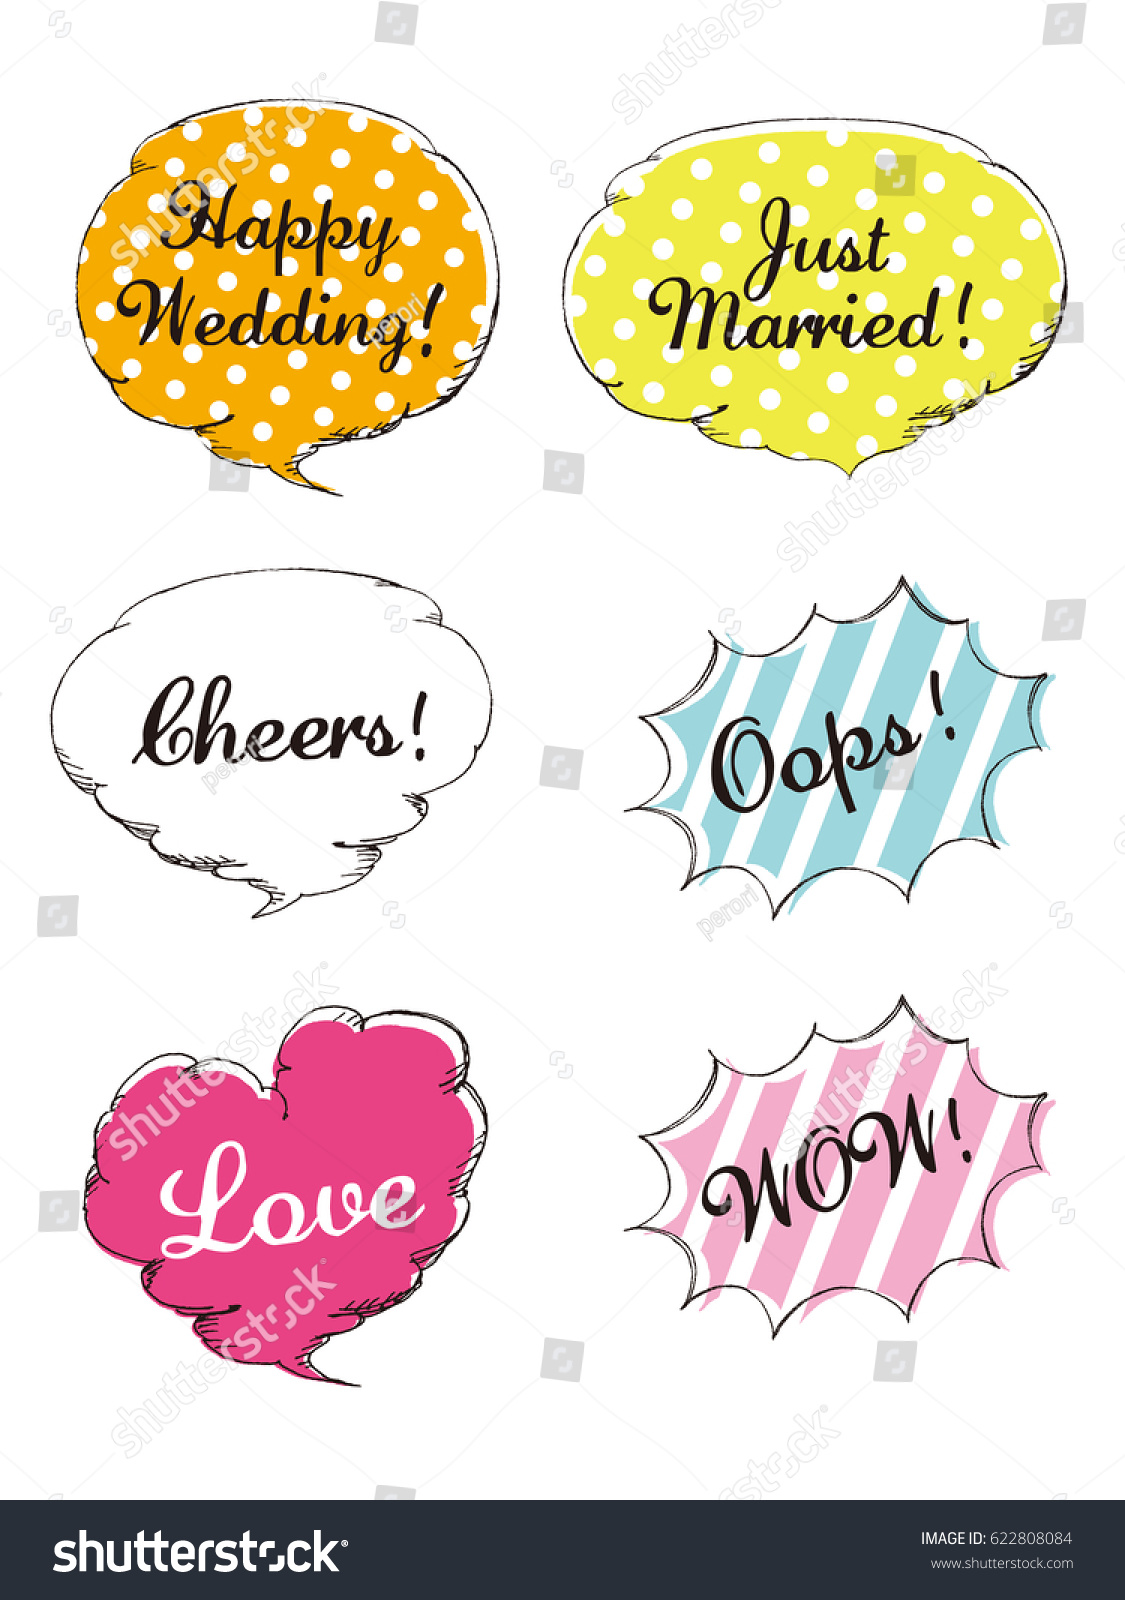 wedding design elements for party props isolated on white background photo booth and vector